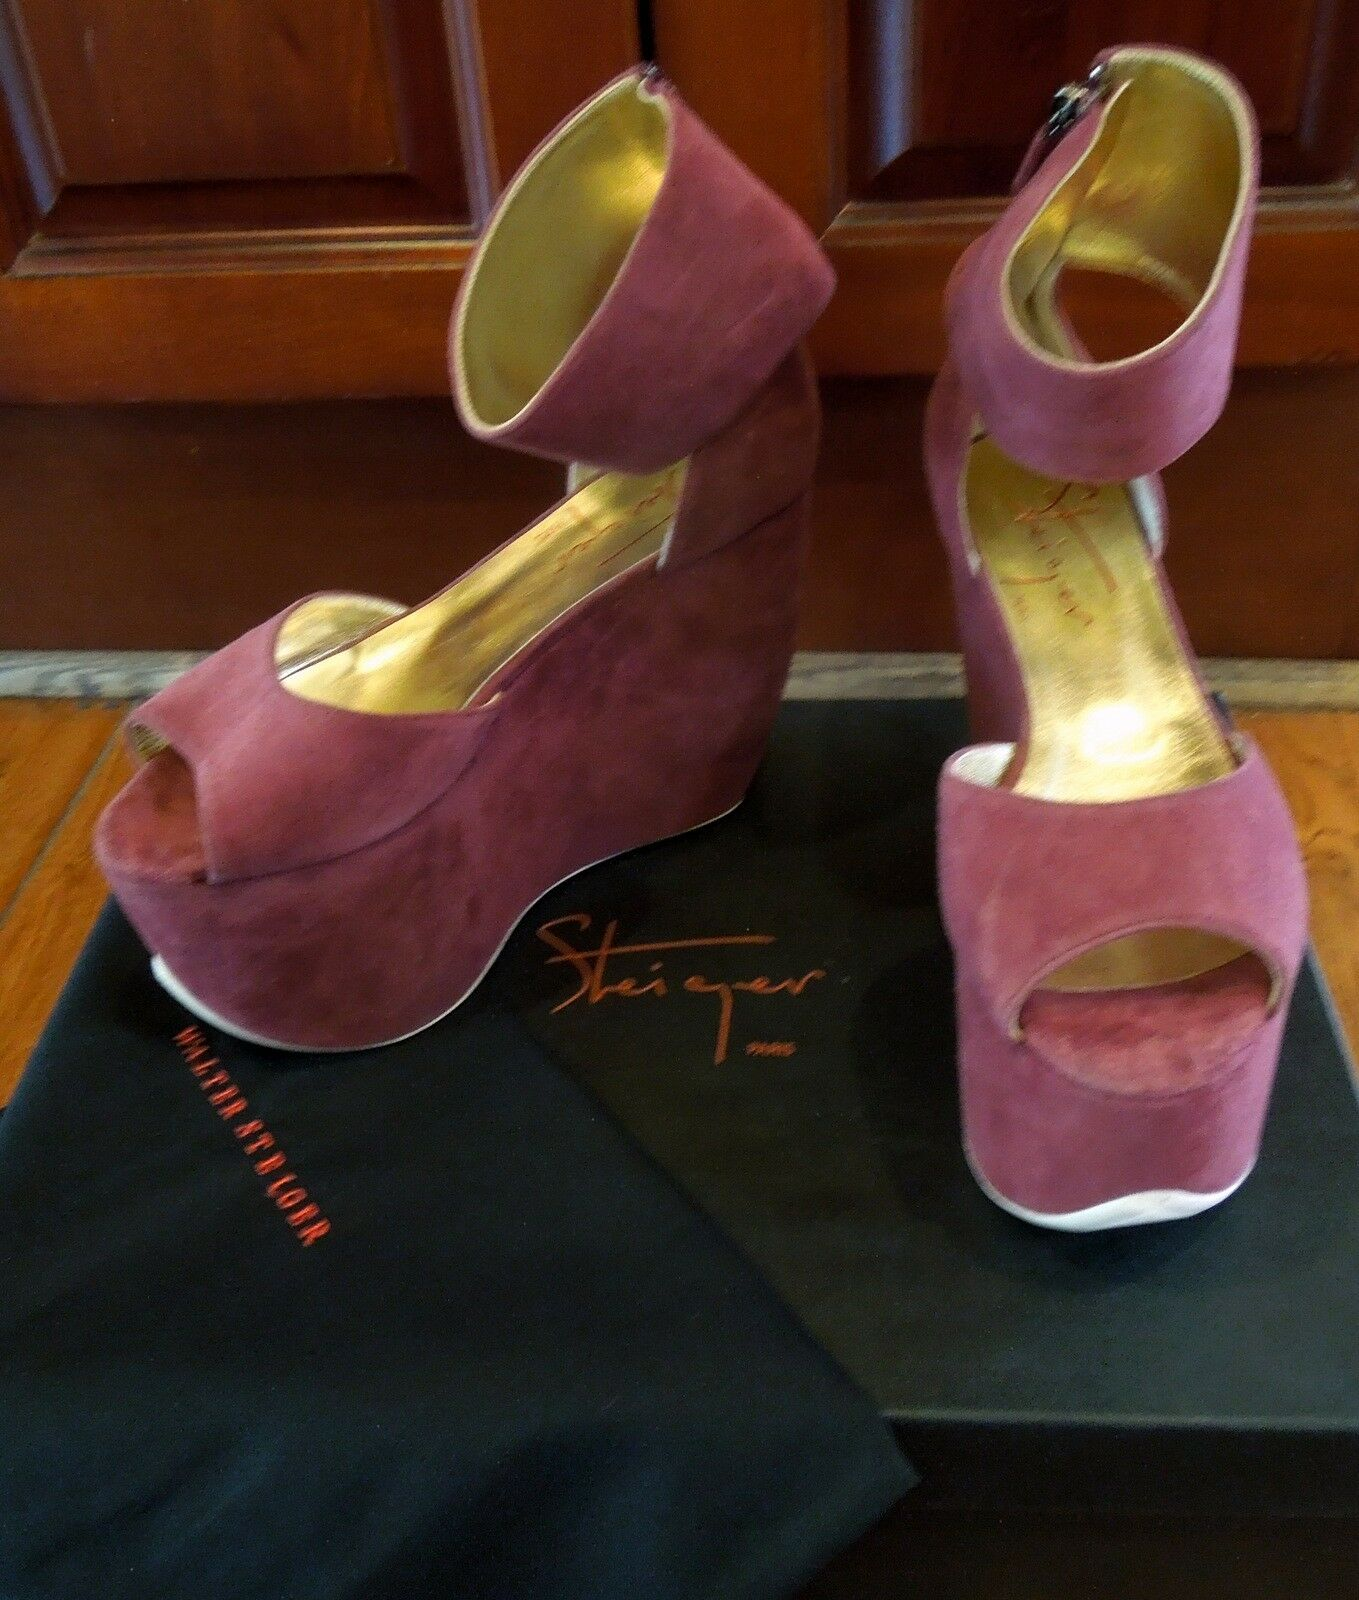 1,090 AUTH NIB NEW WALTER STEIGER Wine color Ankle Cuff Platform Wedge Sz 7 913393